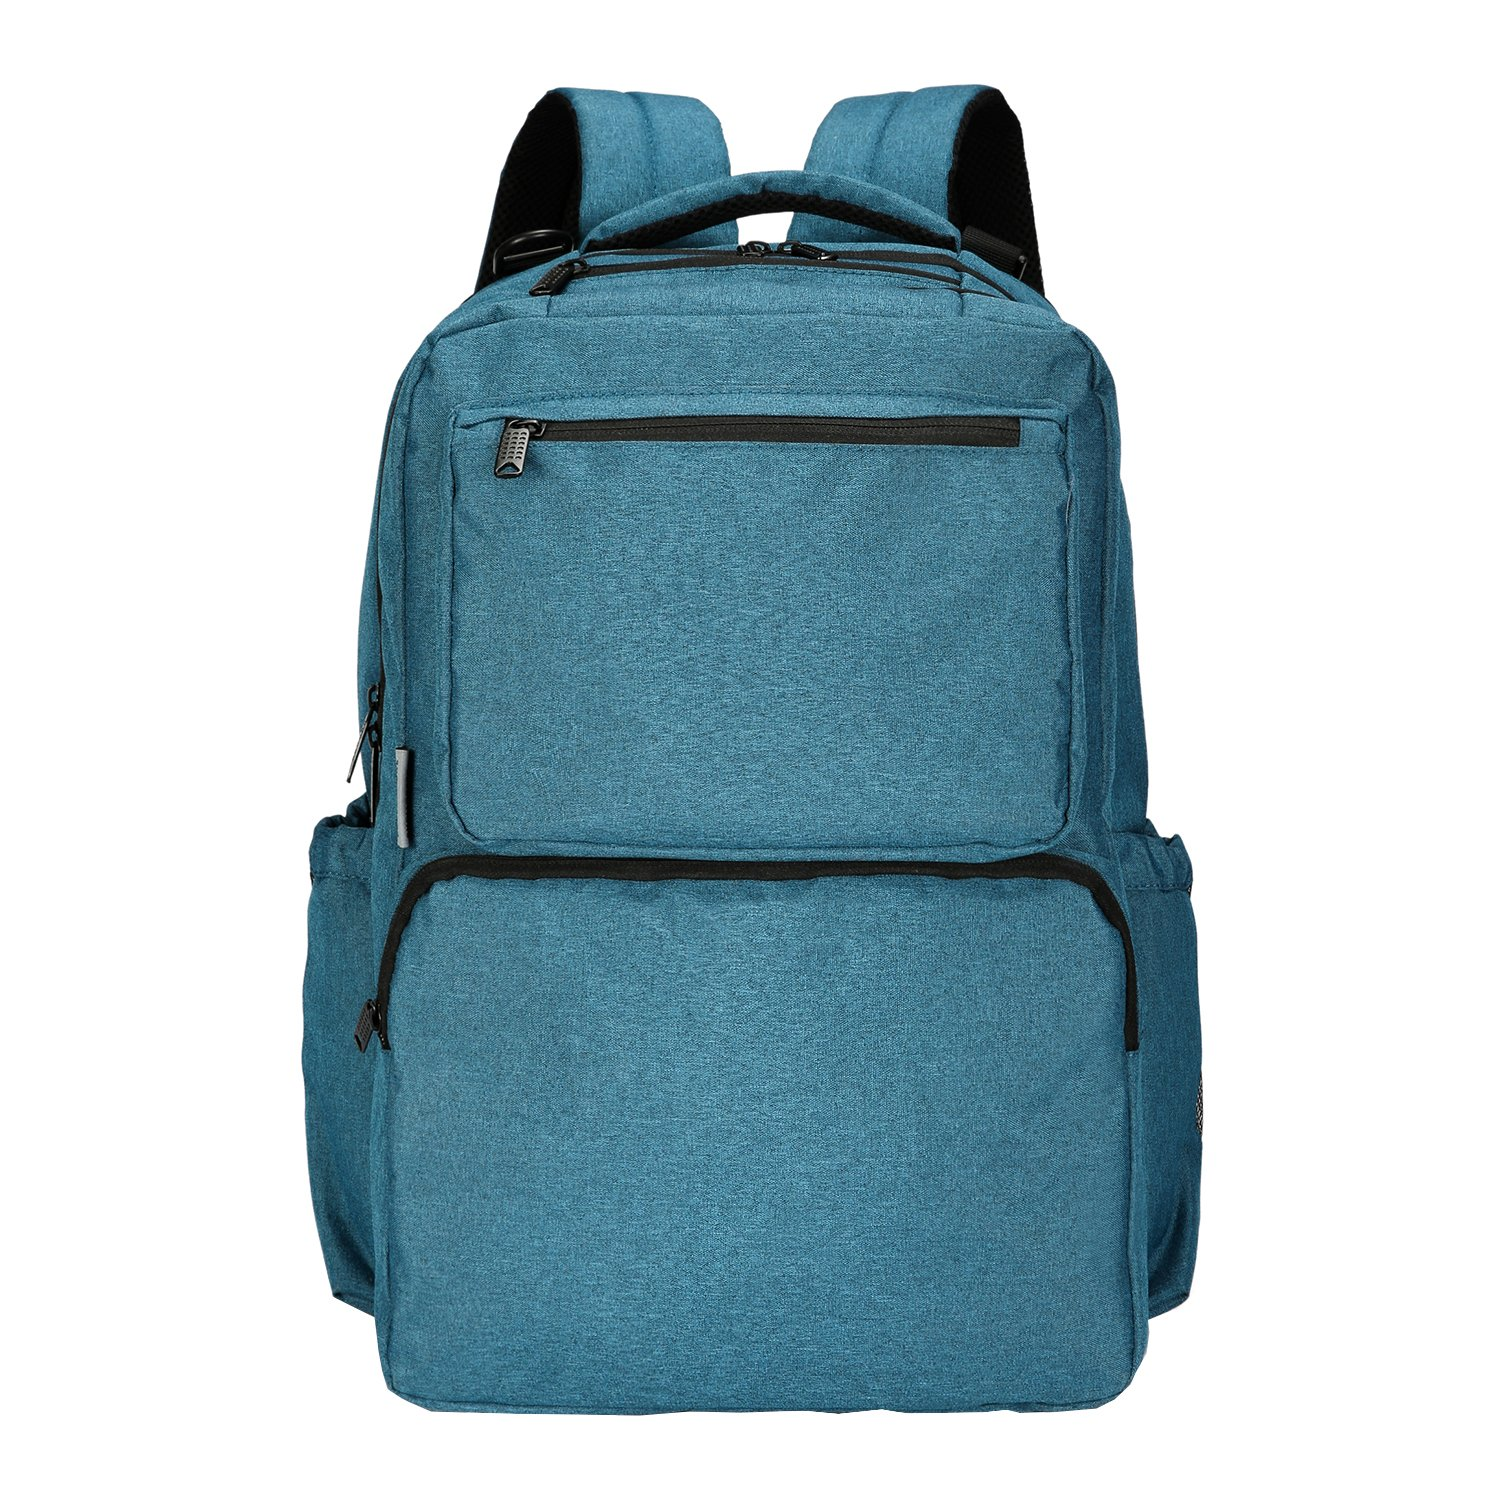 SoHo diaper bag backpack Ultimate System 5 pieces nappy tote bag for baby mom dad stylish insulated unisex multifunction large capacity durable includes changing pad stroller straps Teal